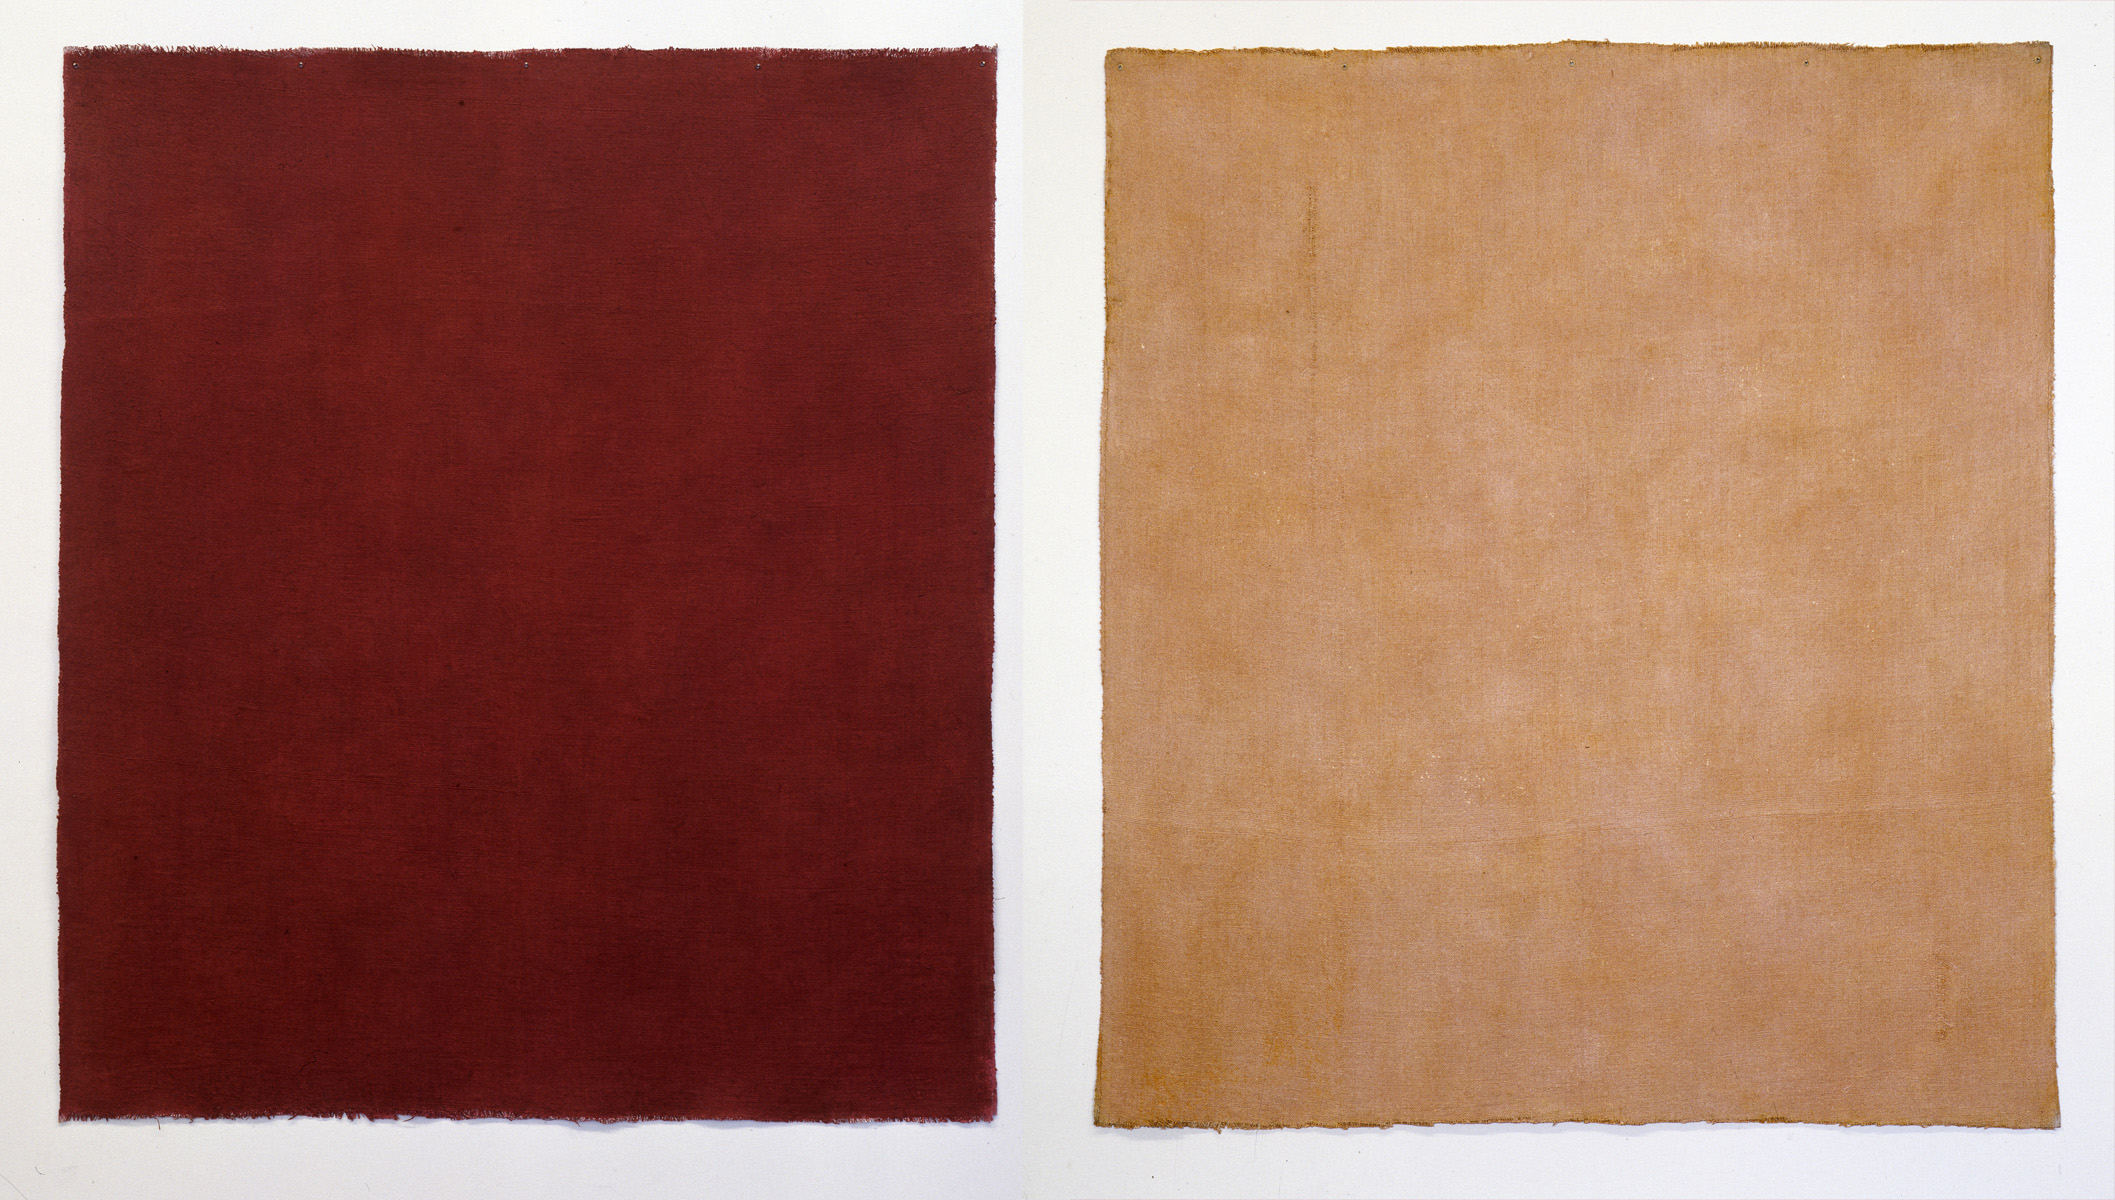 BRIAN BLANCHFLOWER  Canopy XL - Diptych (purple madder and bronze) , 1997 micaceous acrylic, acrylic gesso on laminated hessian 209 x 398 cm